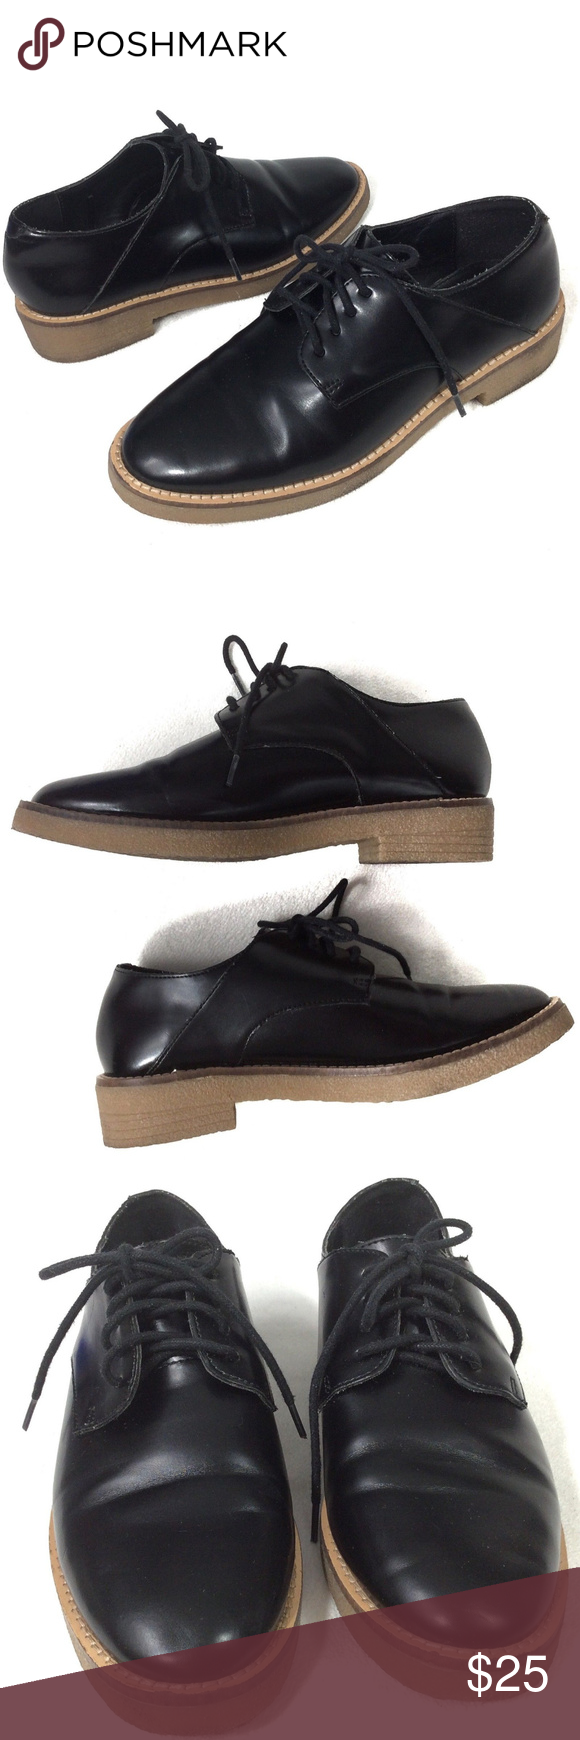 5baf2f79379 F21 Patent Leather Lace Up Oxfords Loafers Black 6 F21 Forever 21 Black  Lace Up Loafers